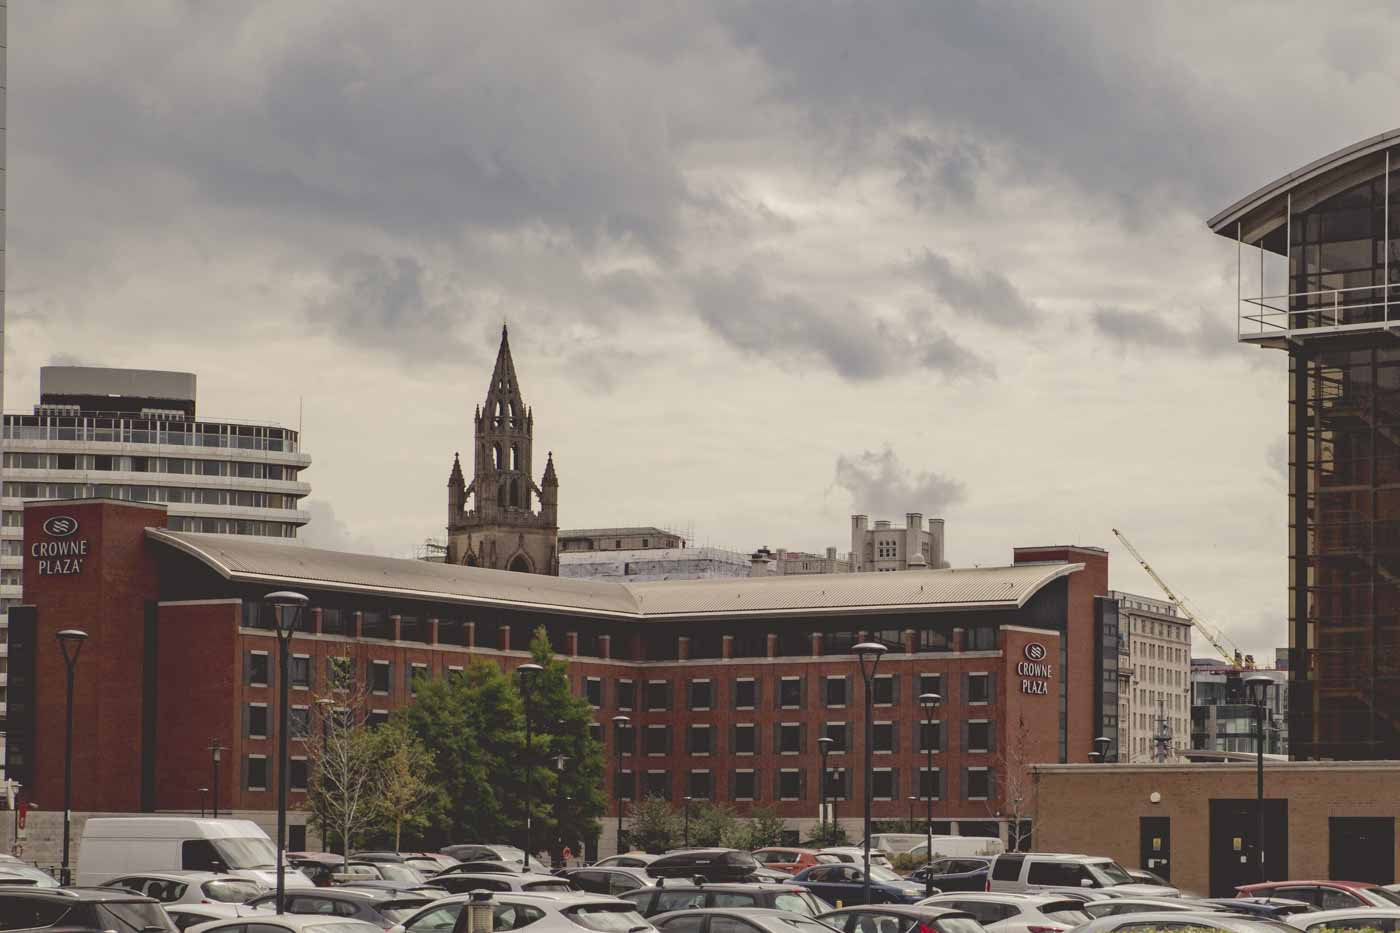 crowne plaza, liverpool, central